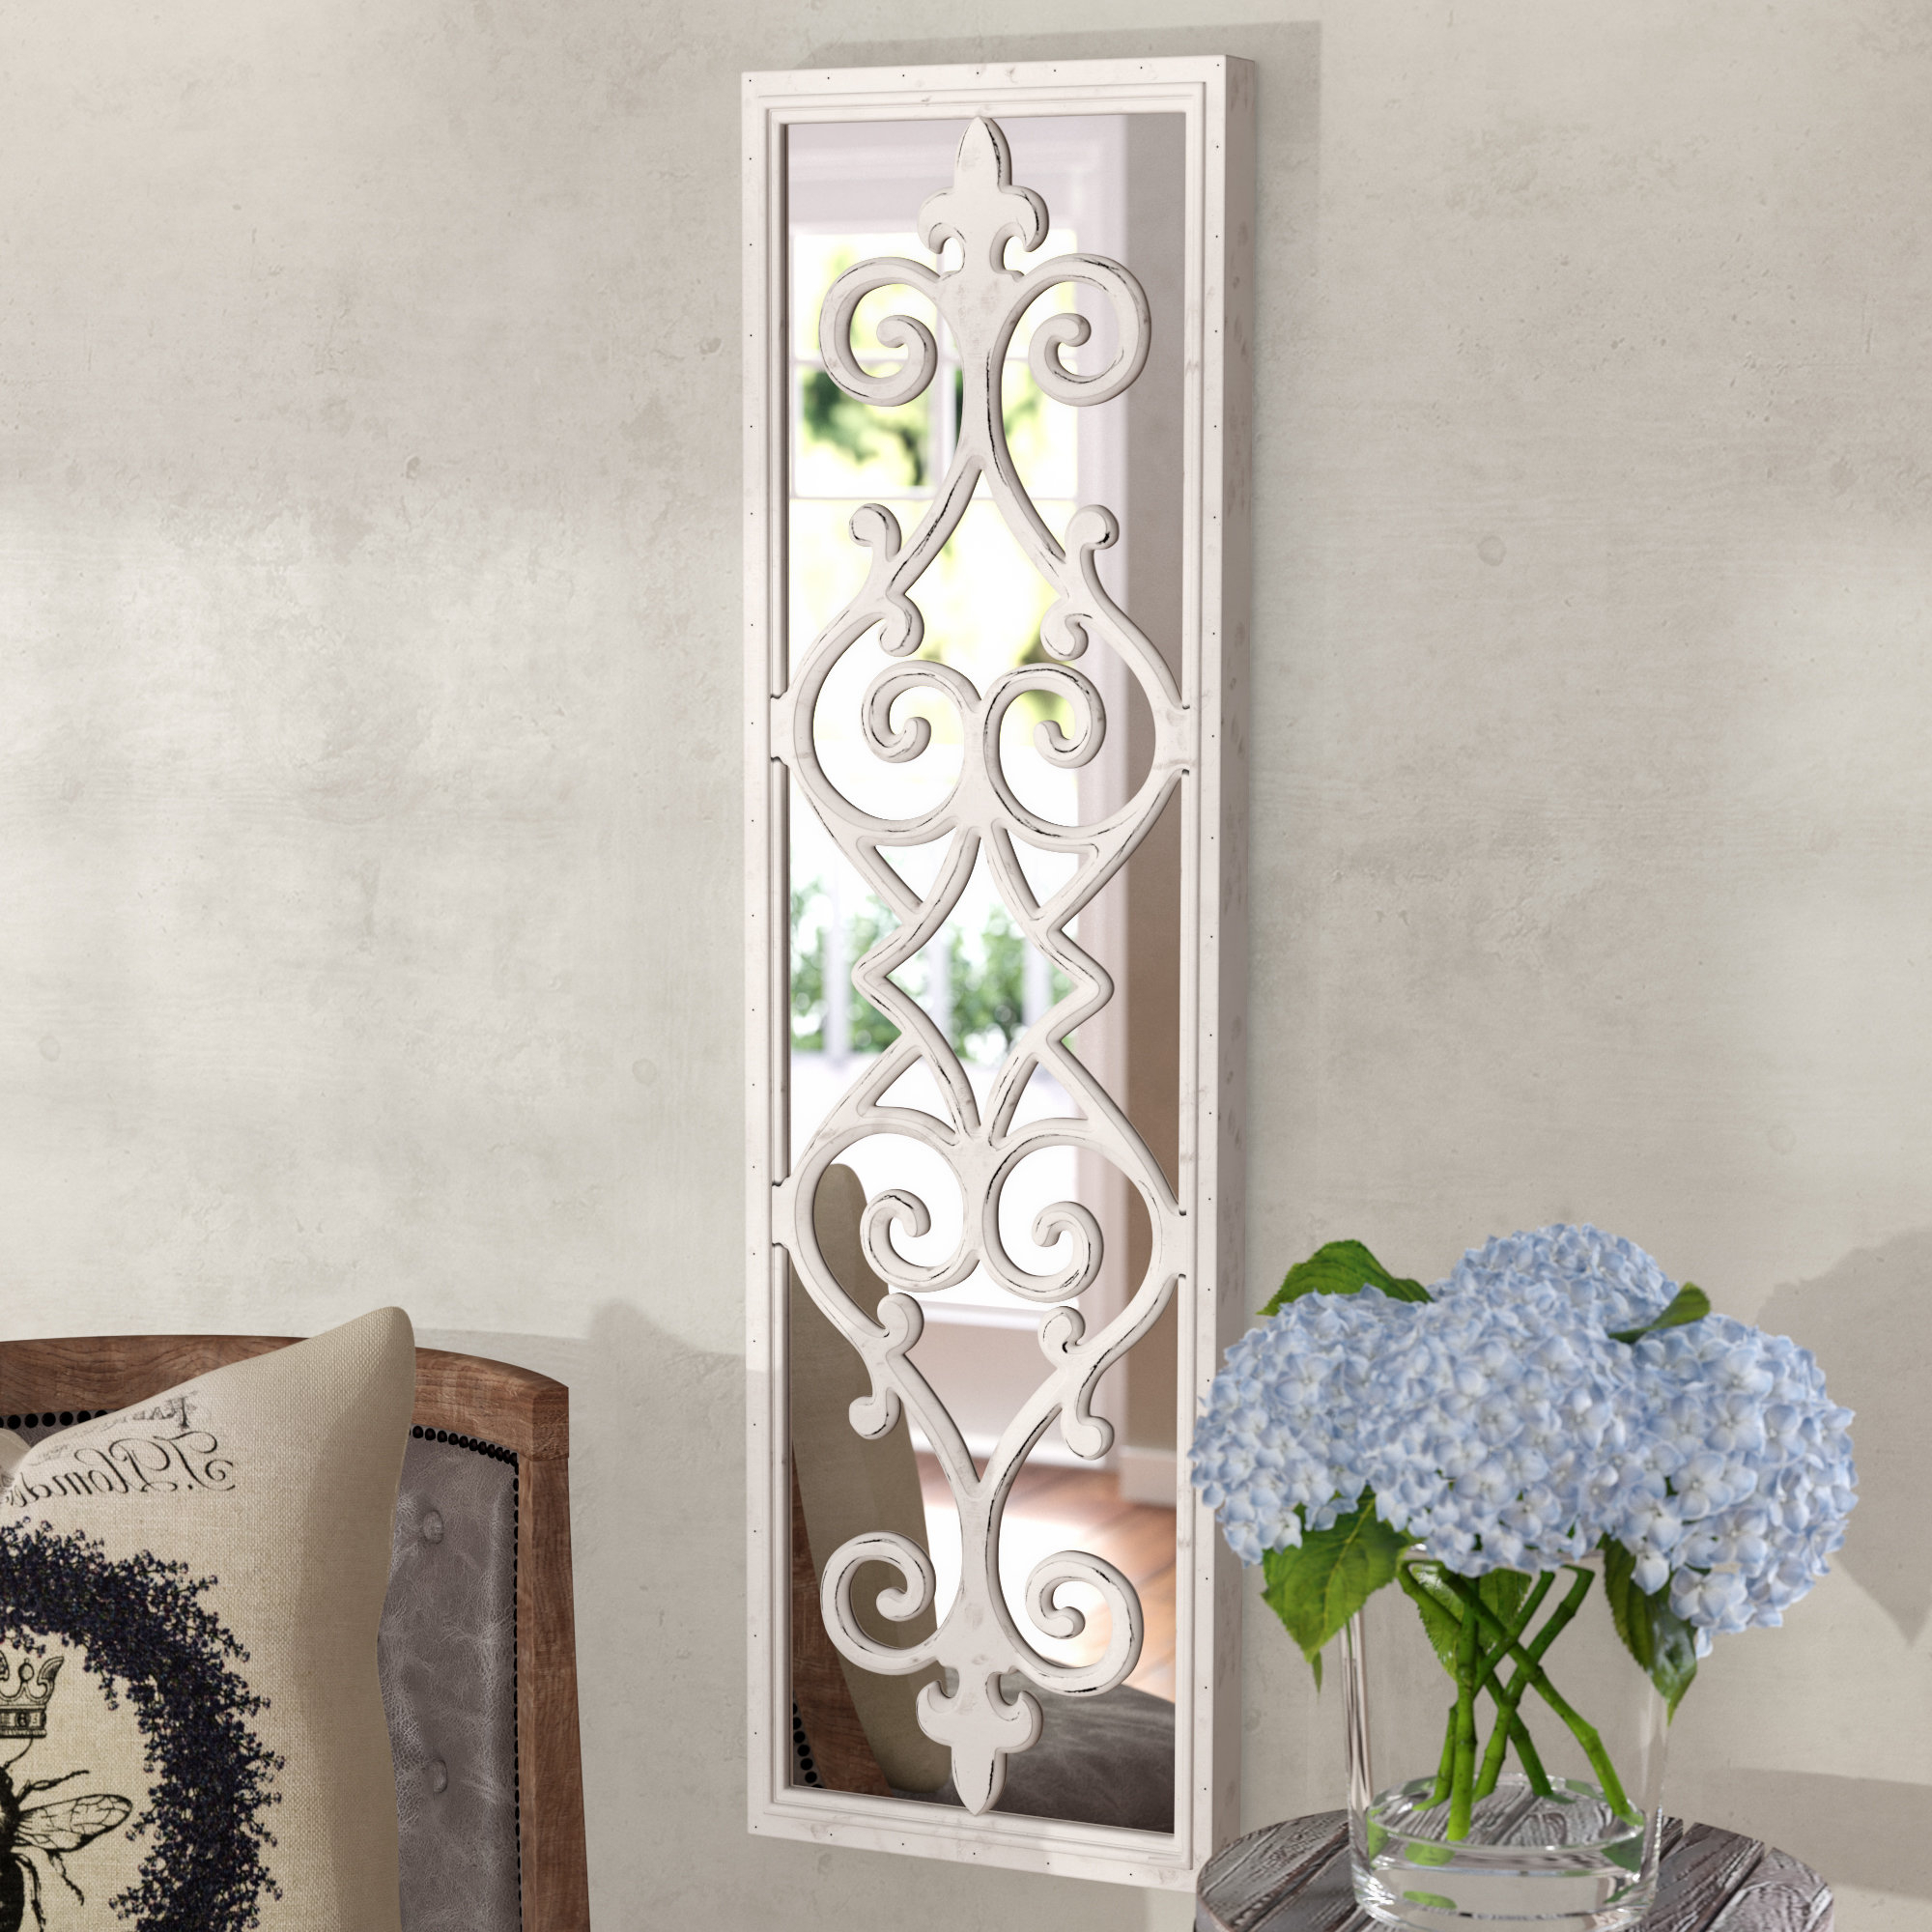 Politte Framed Decorative Scroll Wall Mirror Intended For Well Liked Decorative Cheap Wall Mirrors (View 17 of 20)